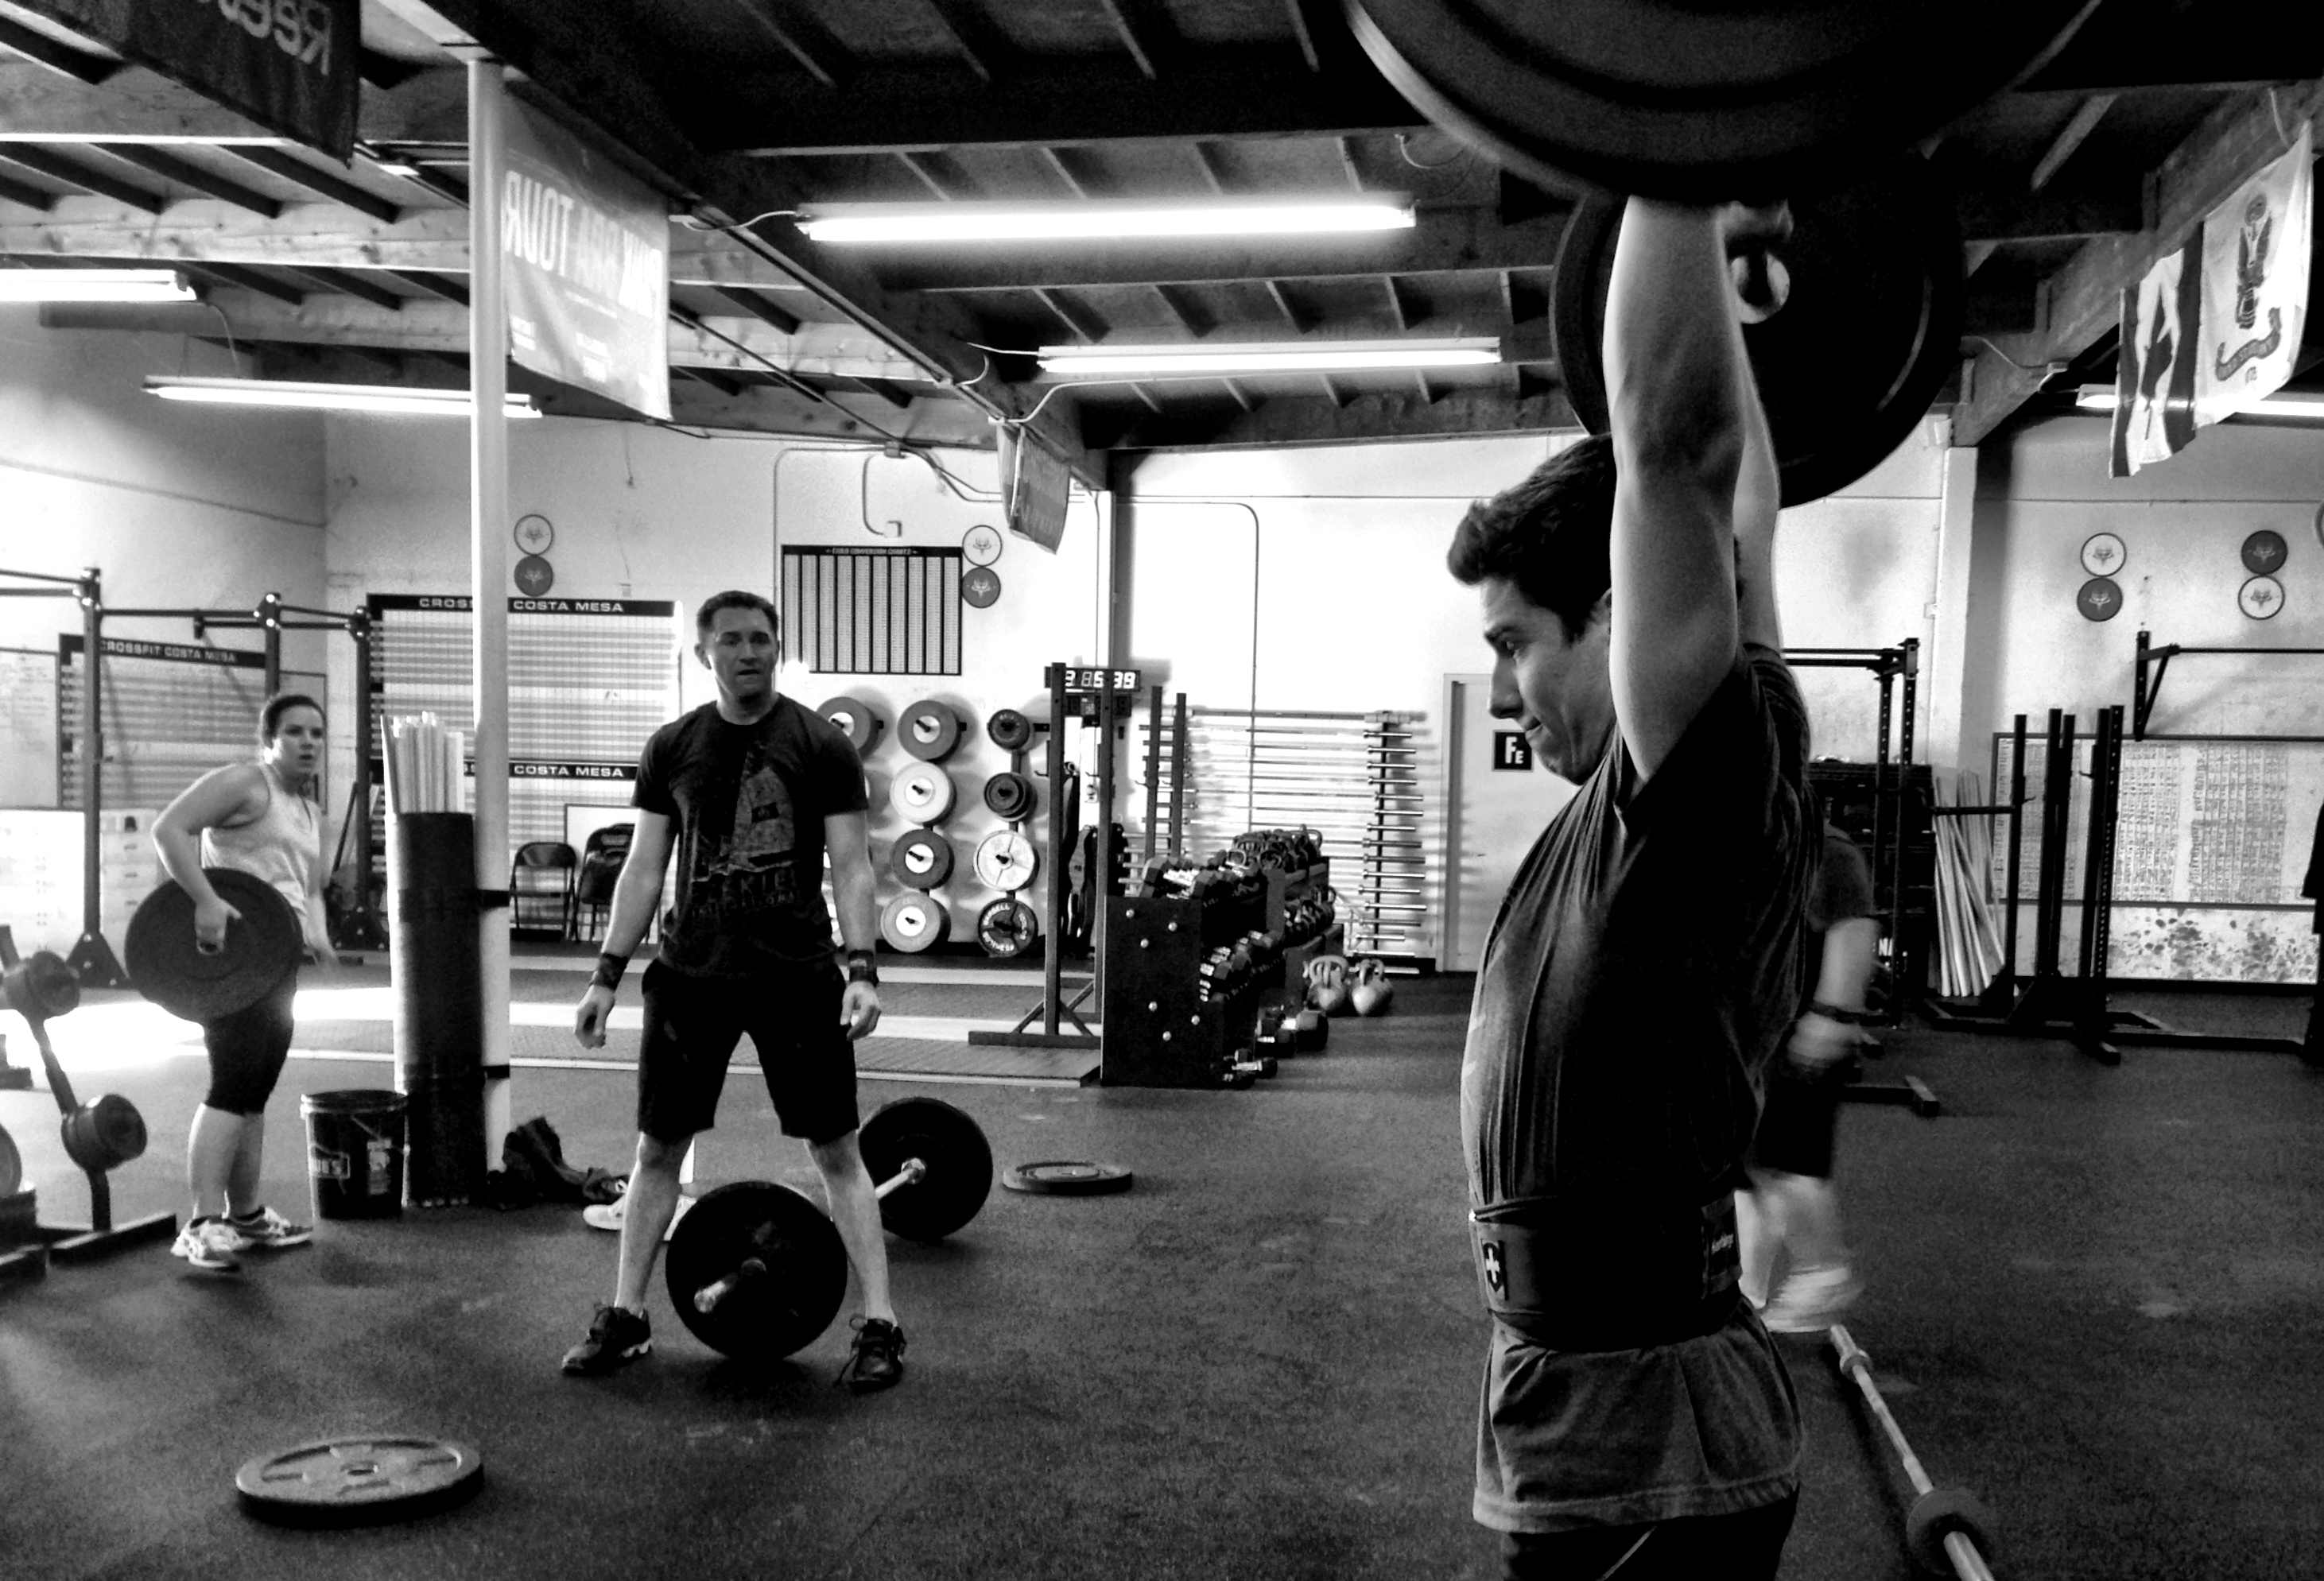 trojan-crossfit-strength-push-press-1RM-1-rep-max-wod-amrap-turkish-get-ups-tgus-kettlebells-burpees-kbs-kettlebell-swings-olympic-lifting-weightlifting-dtlaw-dtla-weightlifting-downtown-la-weightlifting